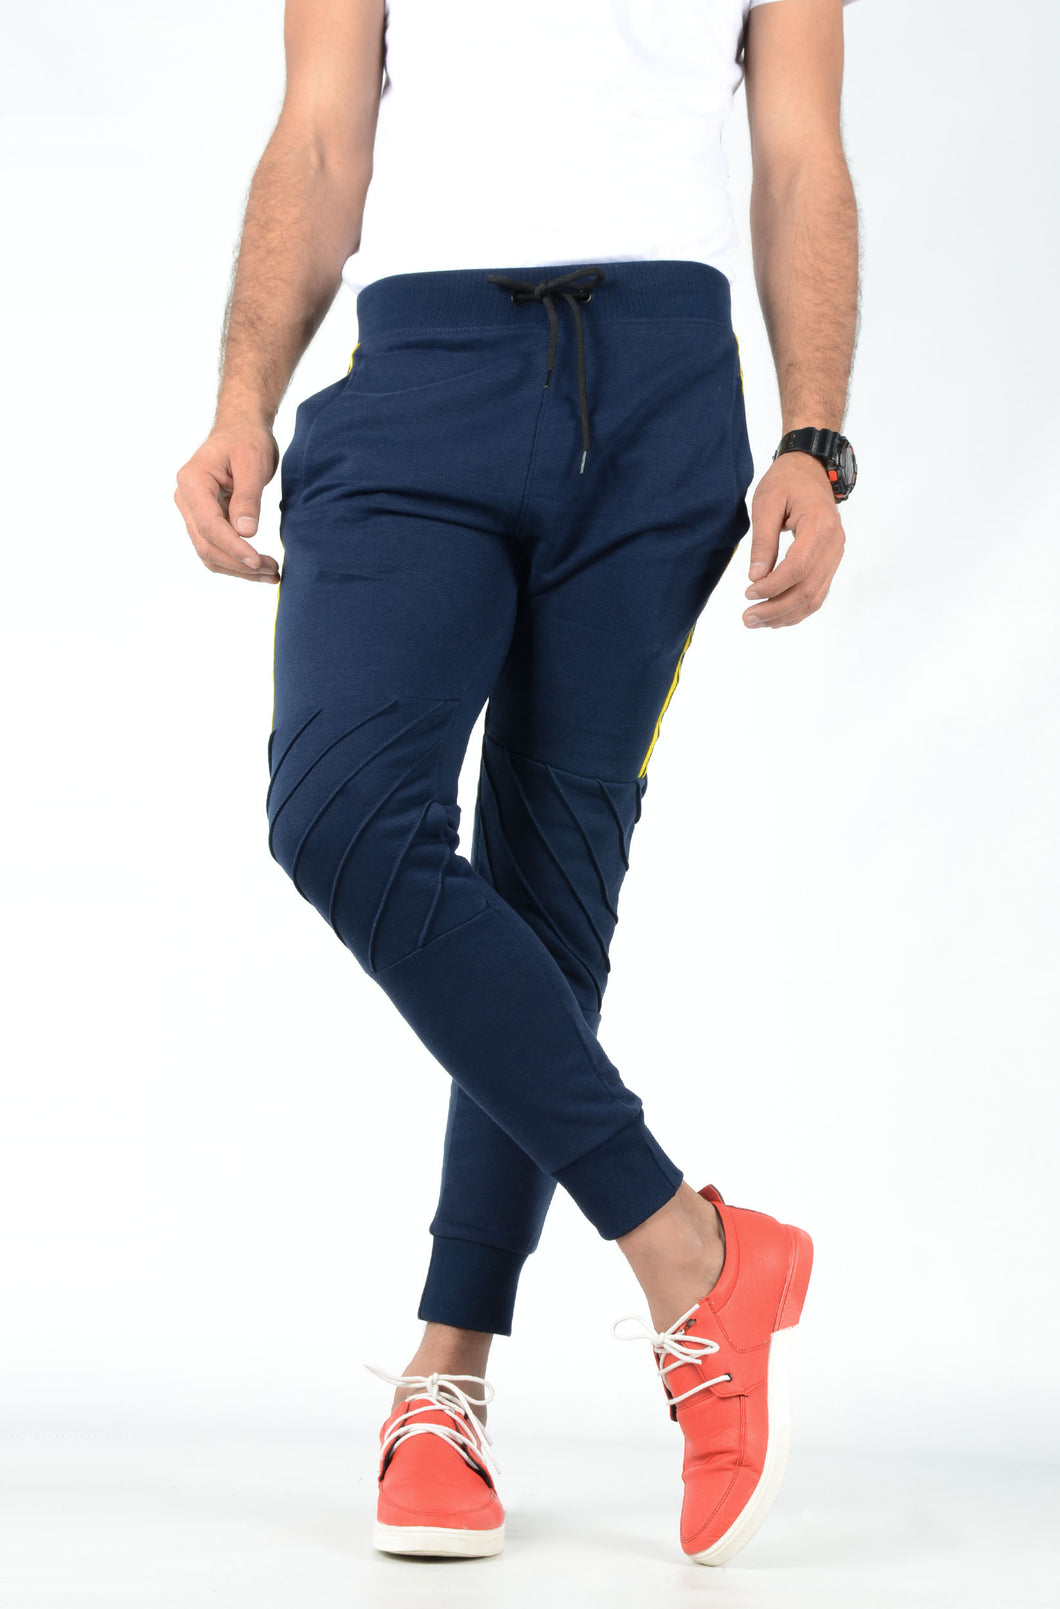 S&F MEN'S JOGGER PANTS (4647432880260)